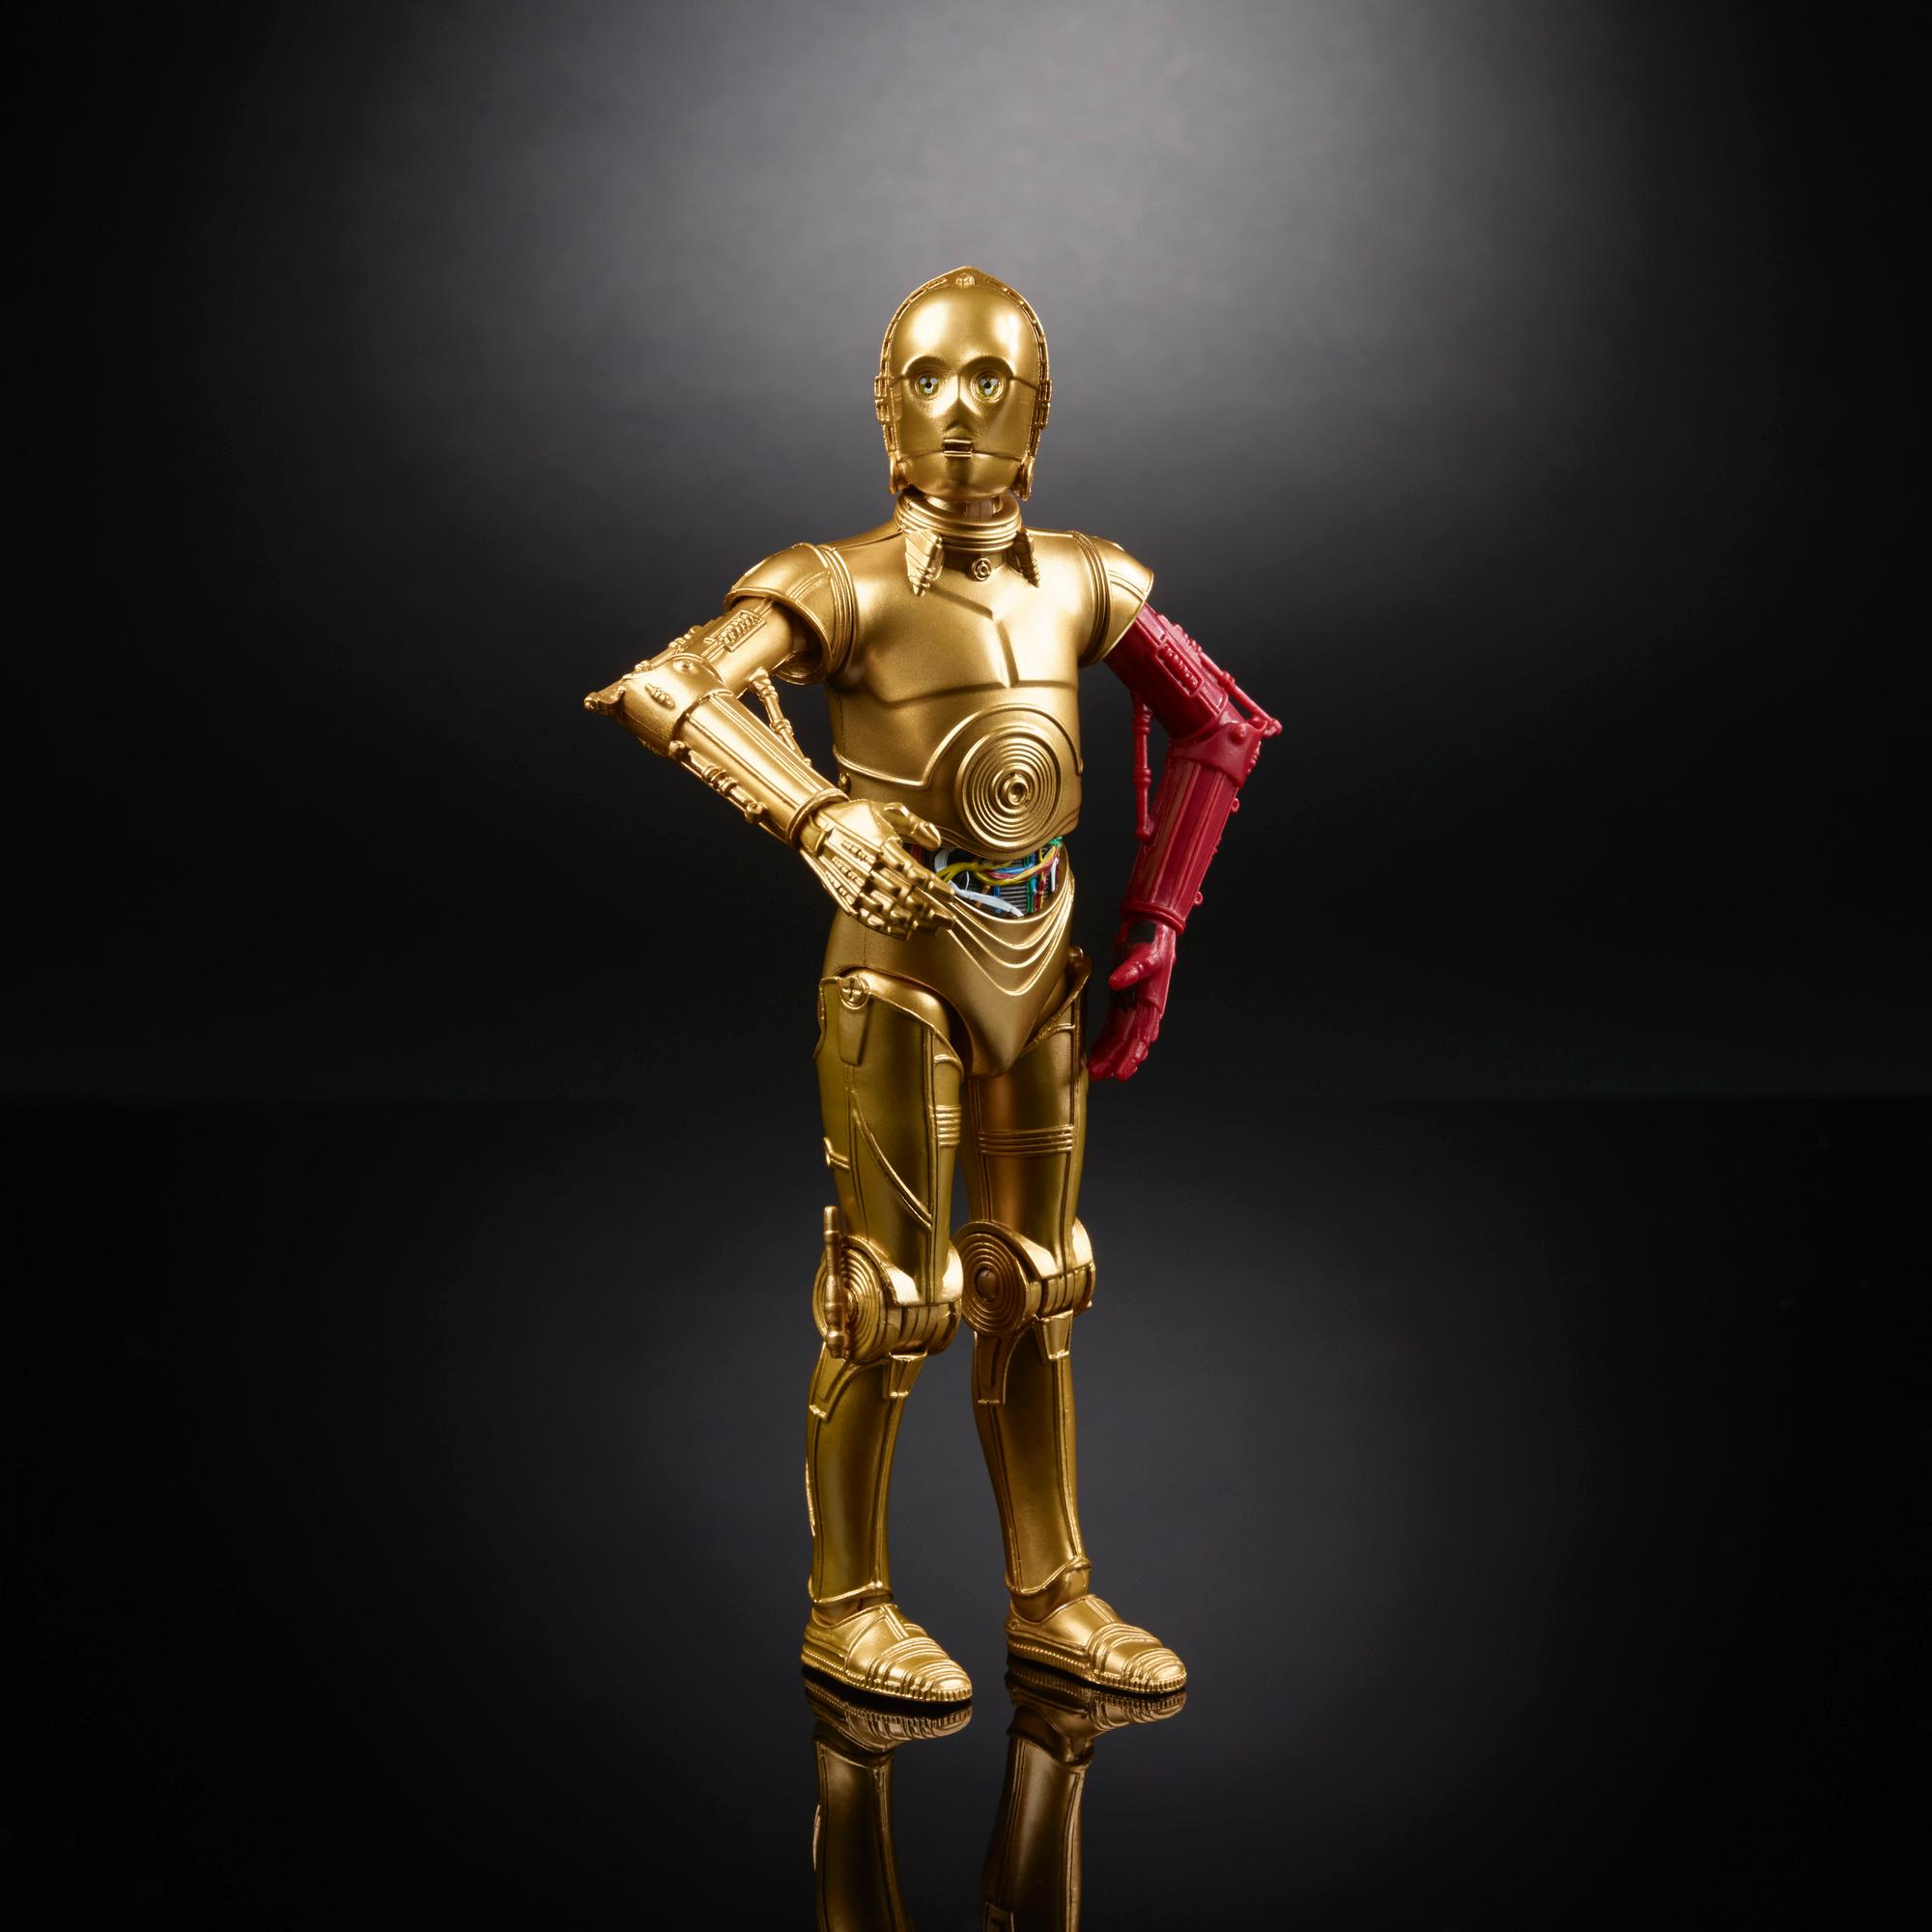 Războiul Stelelor The Black Series Figurina C-3PO